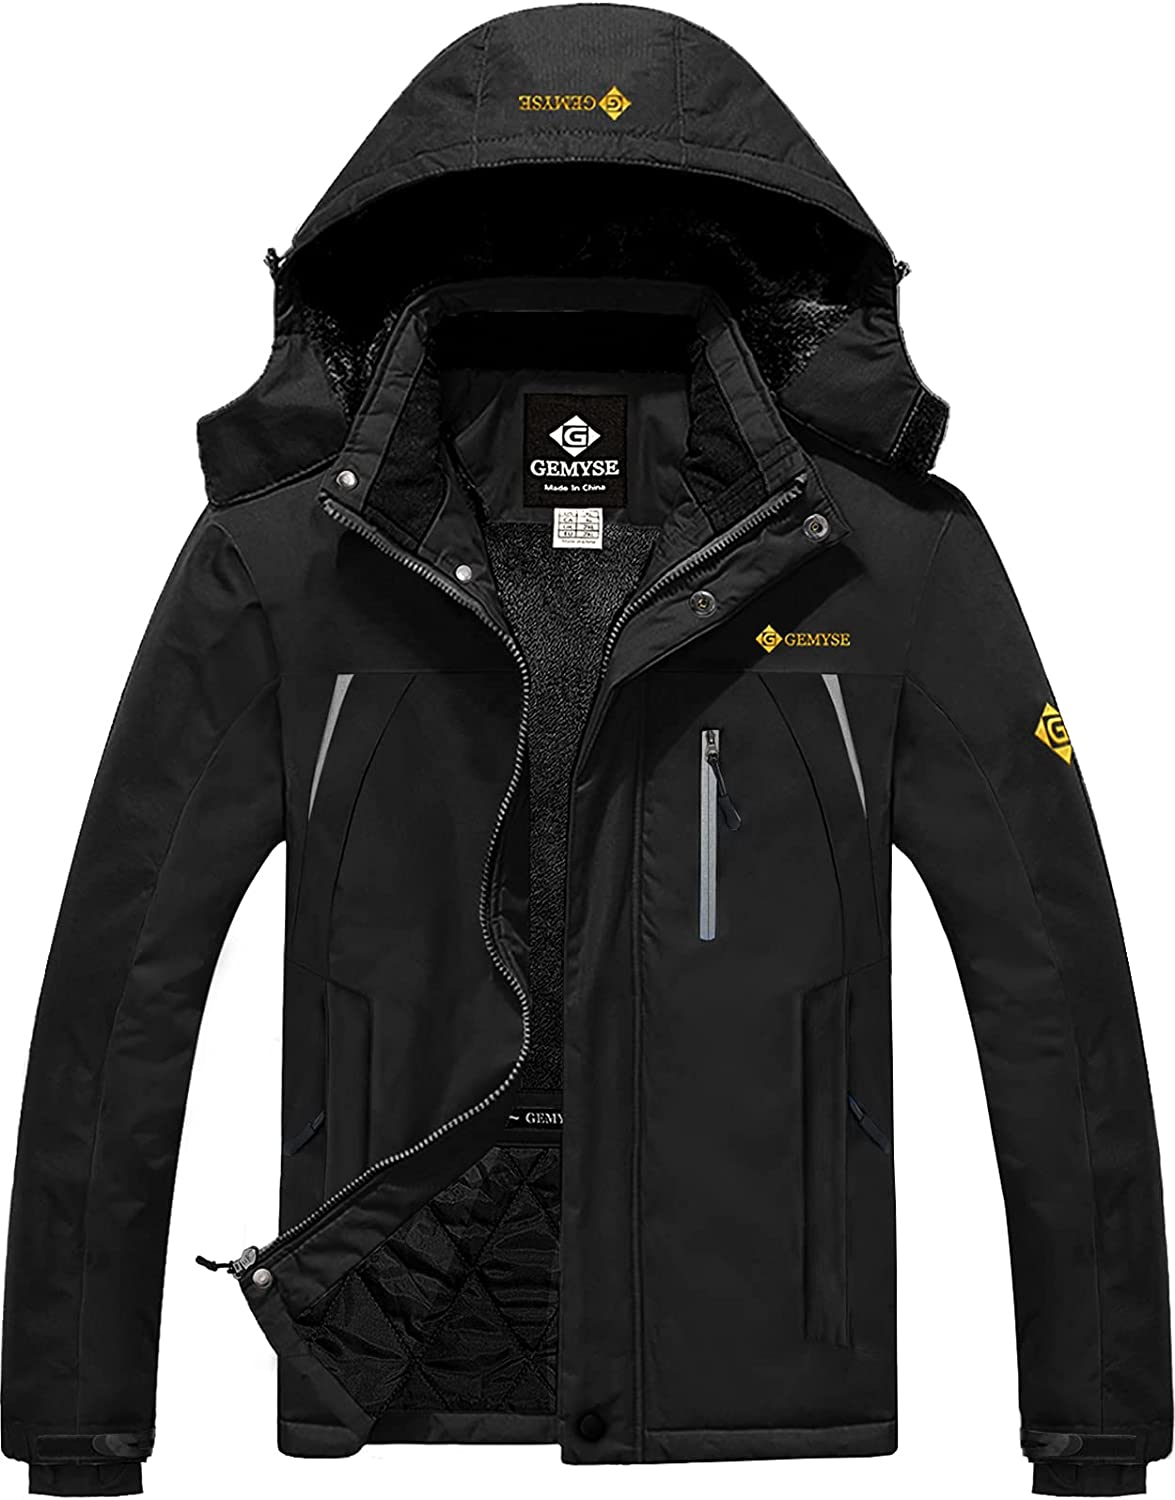 GEMYSE Men's Quantity limited Mountain Waterproof Max 40% OFF Ski Winter Windproo Snow Jacket